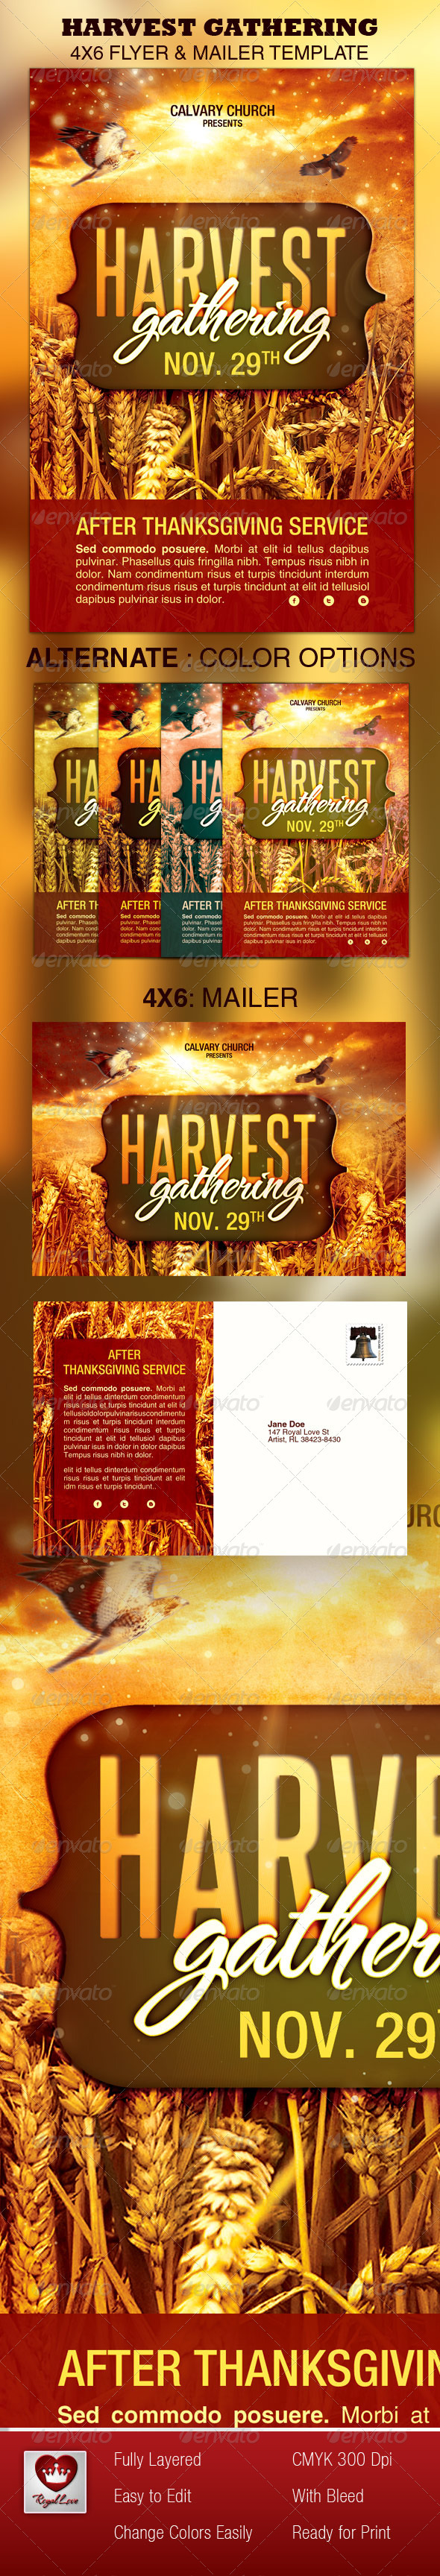 Harvest Gathering Church Flyer & Mailer Template - Church Flyers